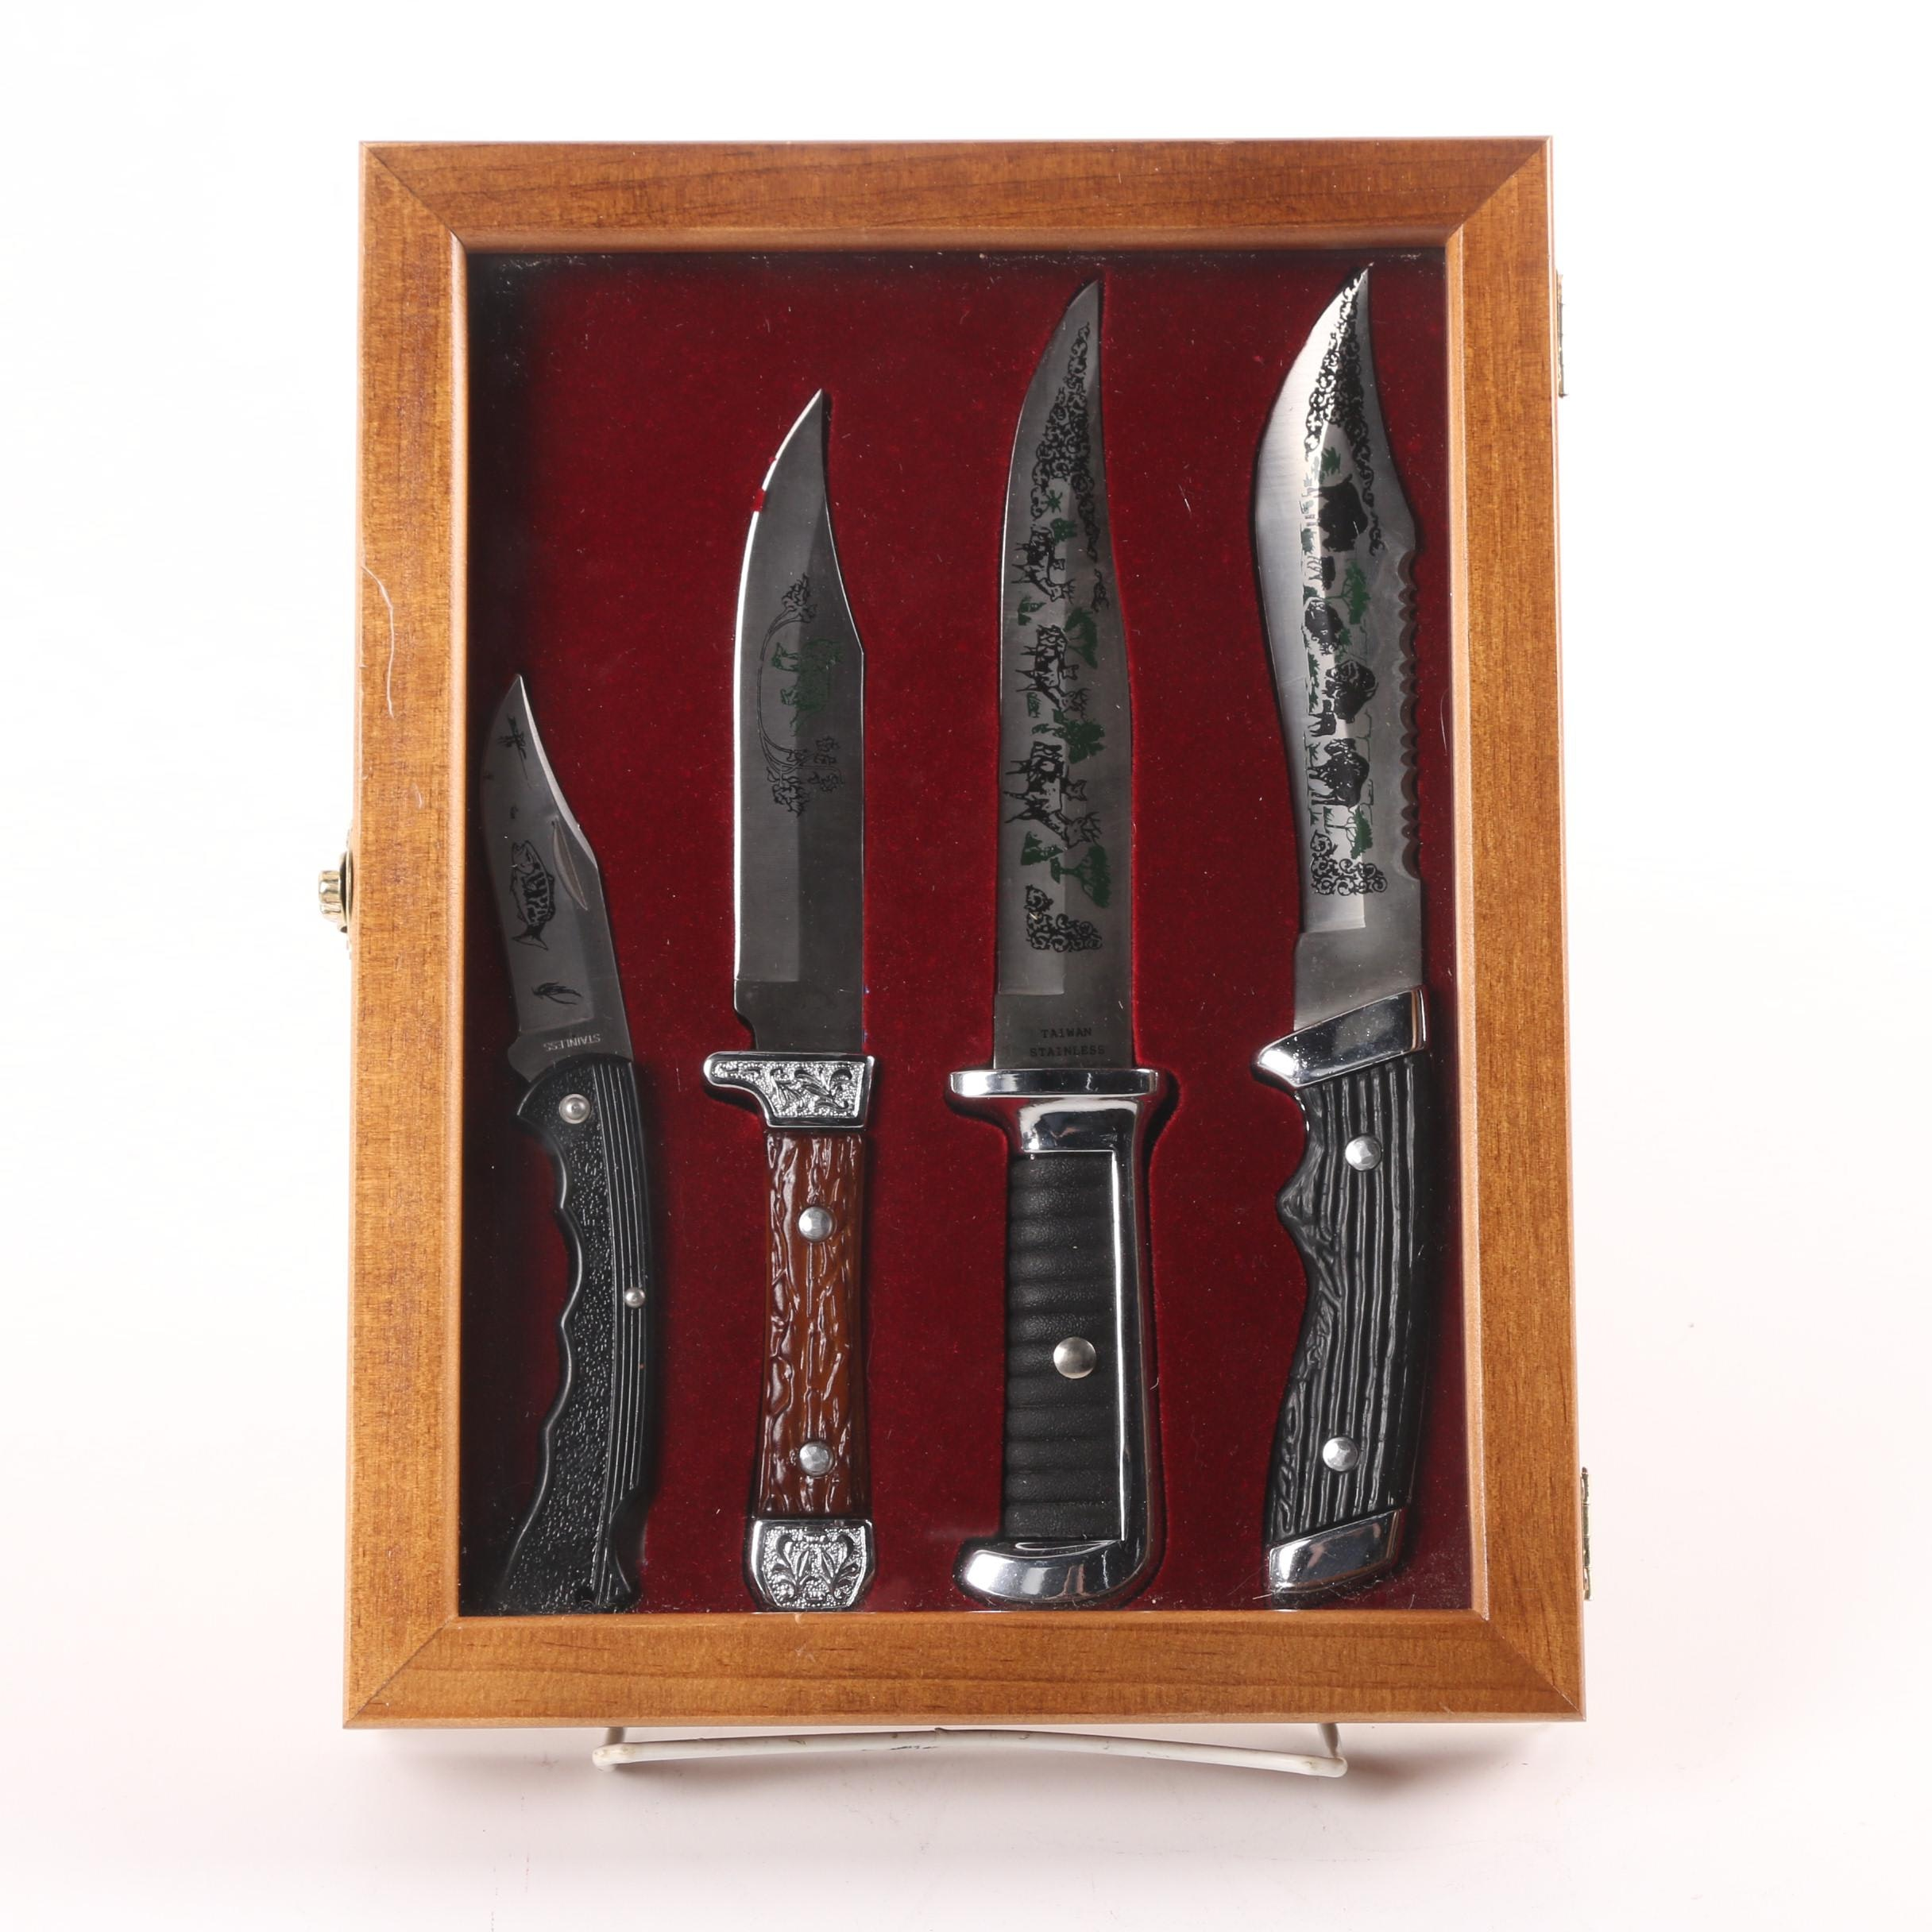 Stainless Steel Hunting Knives in Wooden Display Case